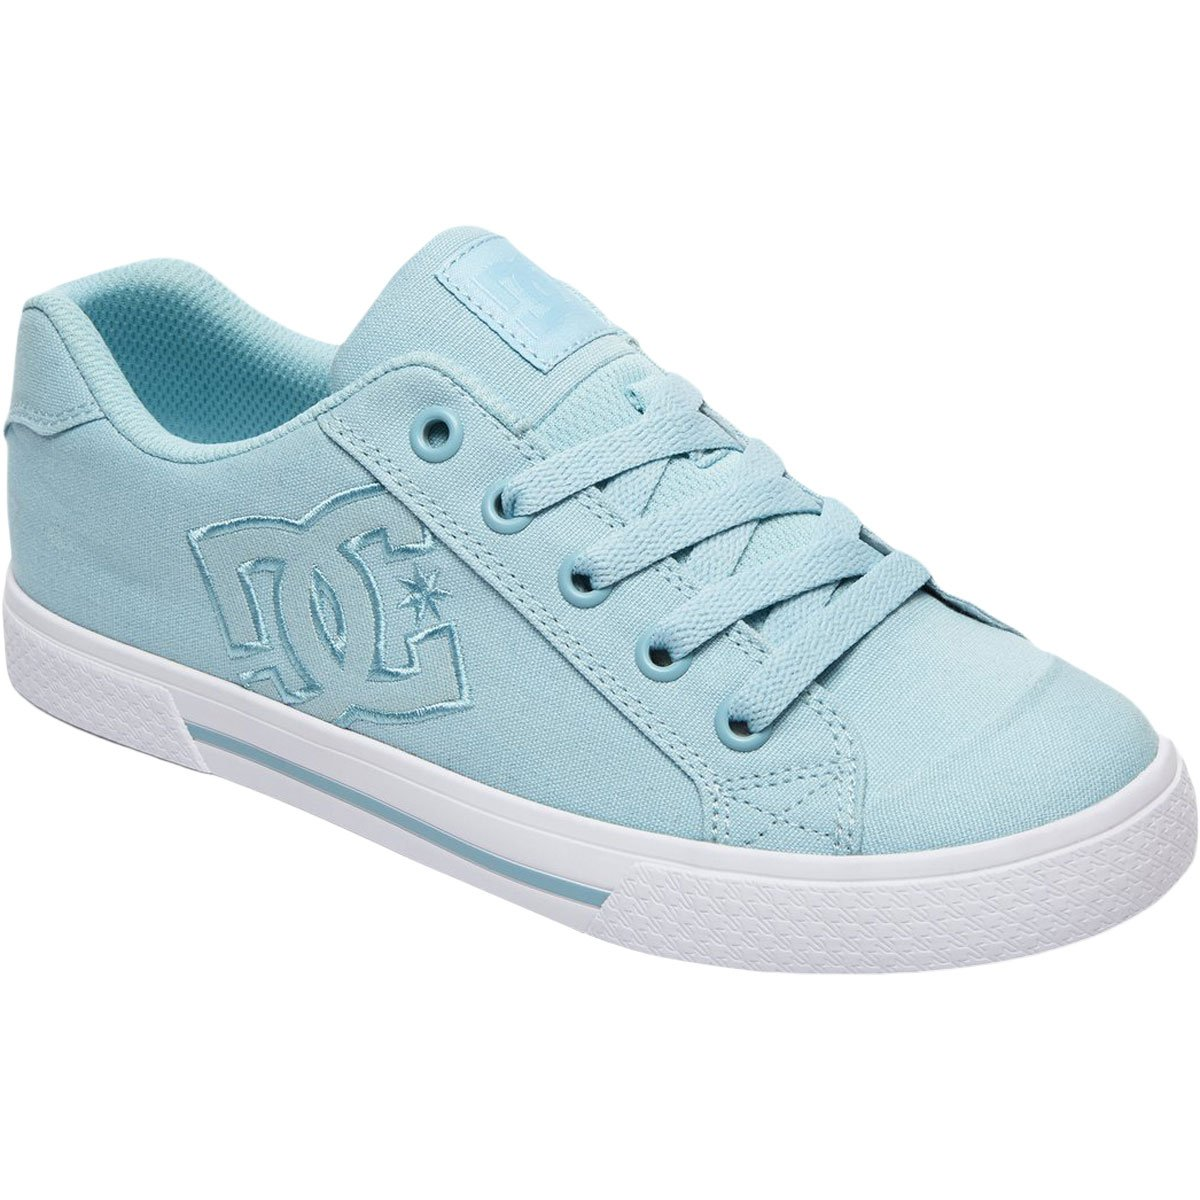 DC Women's Chelsea TX Skate Shoe, Light Blue, 6 B US